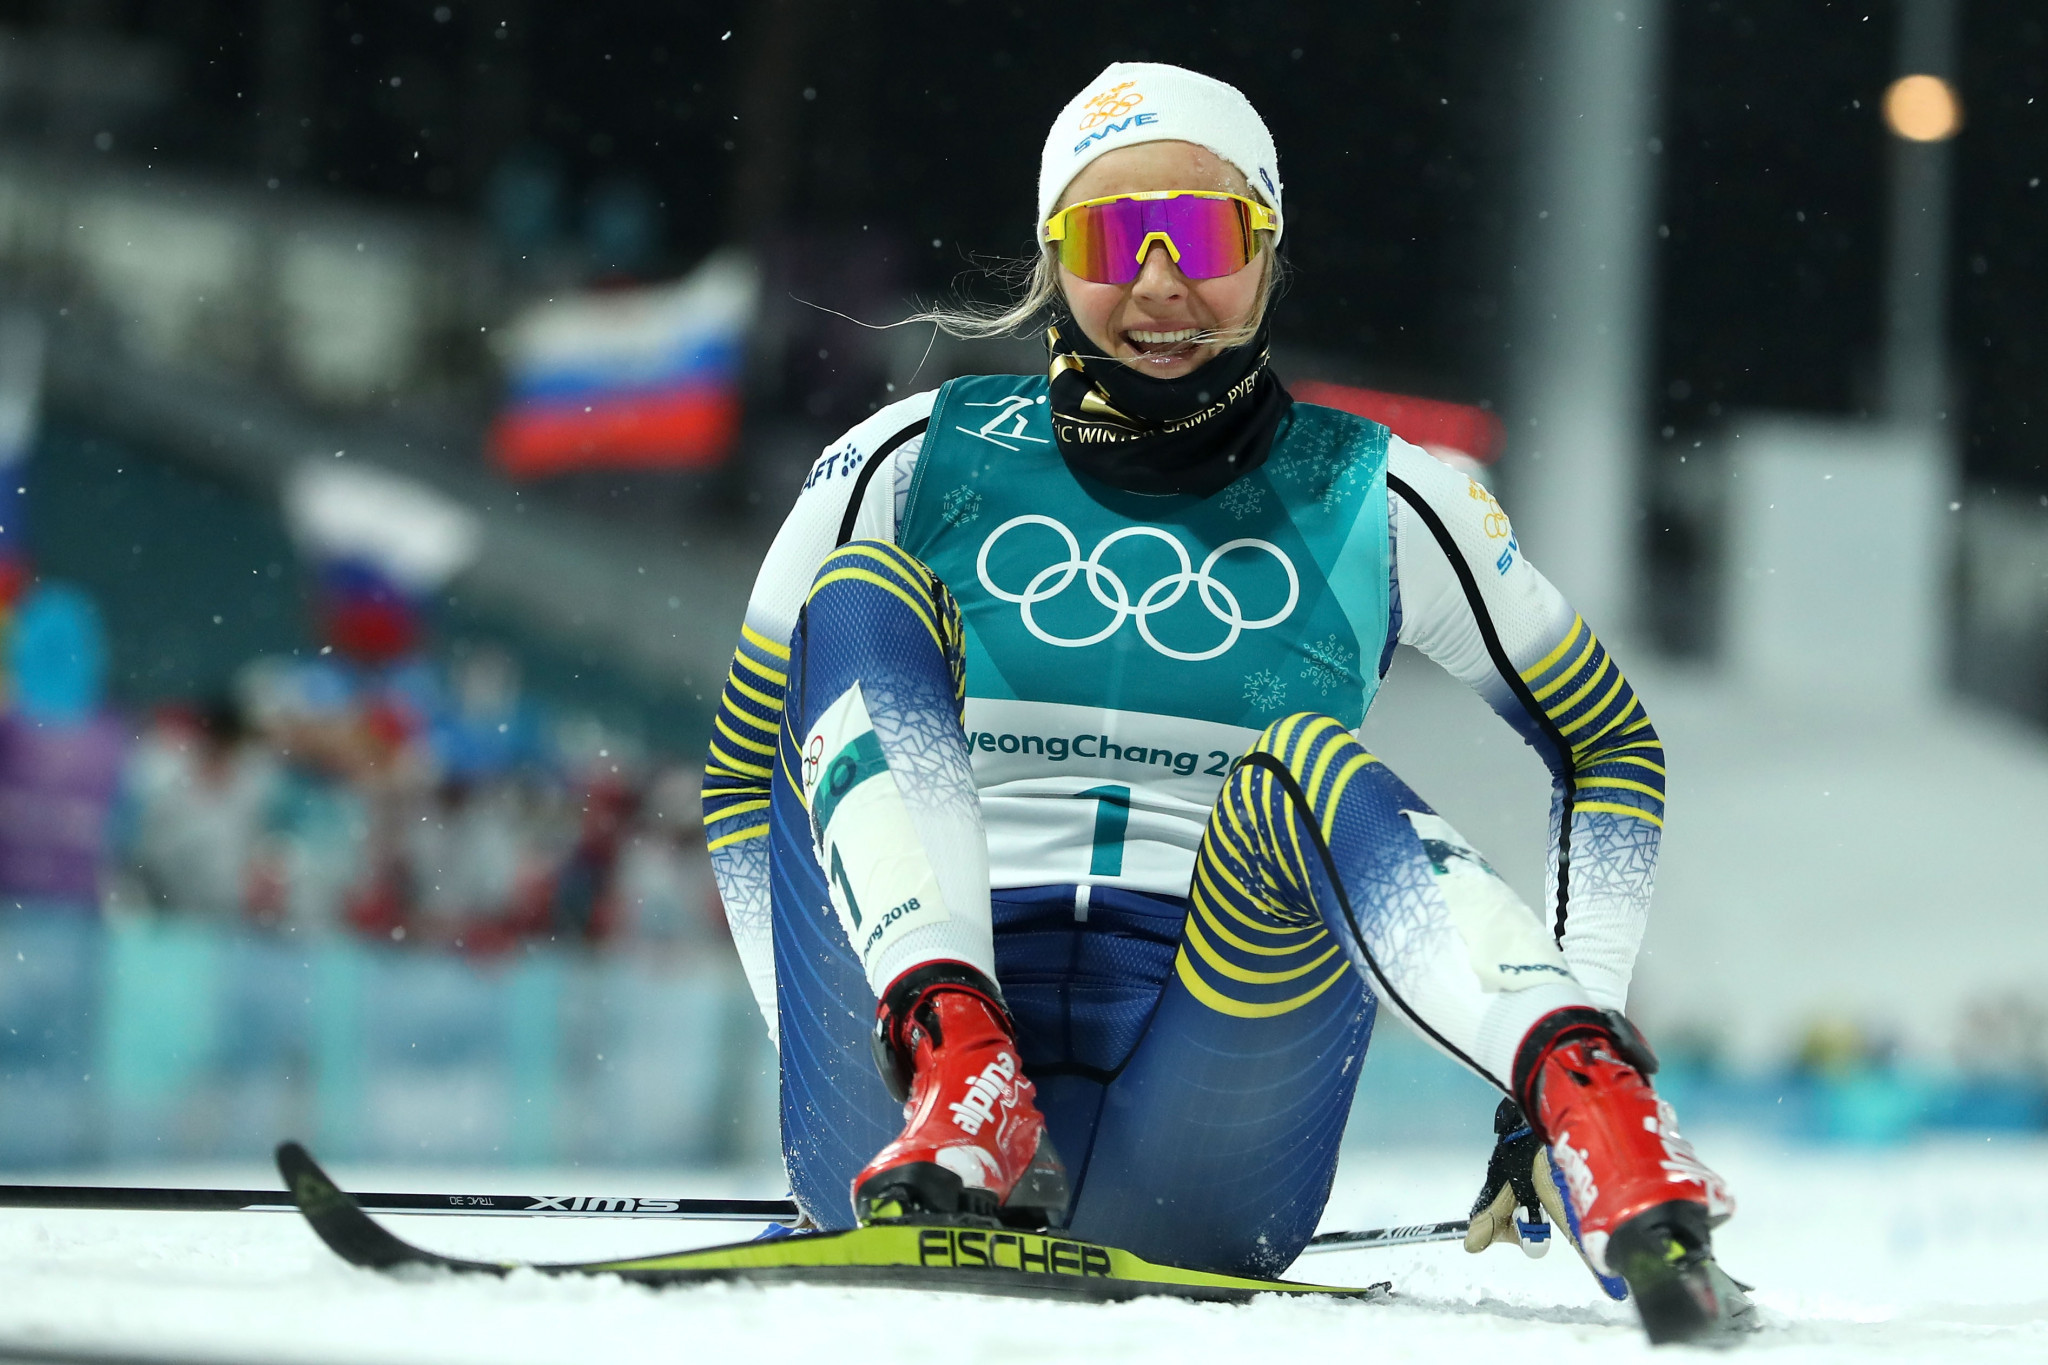 Stina Nilsson led from start to finish in the women's competition ©Getty Images